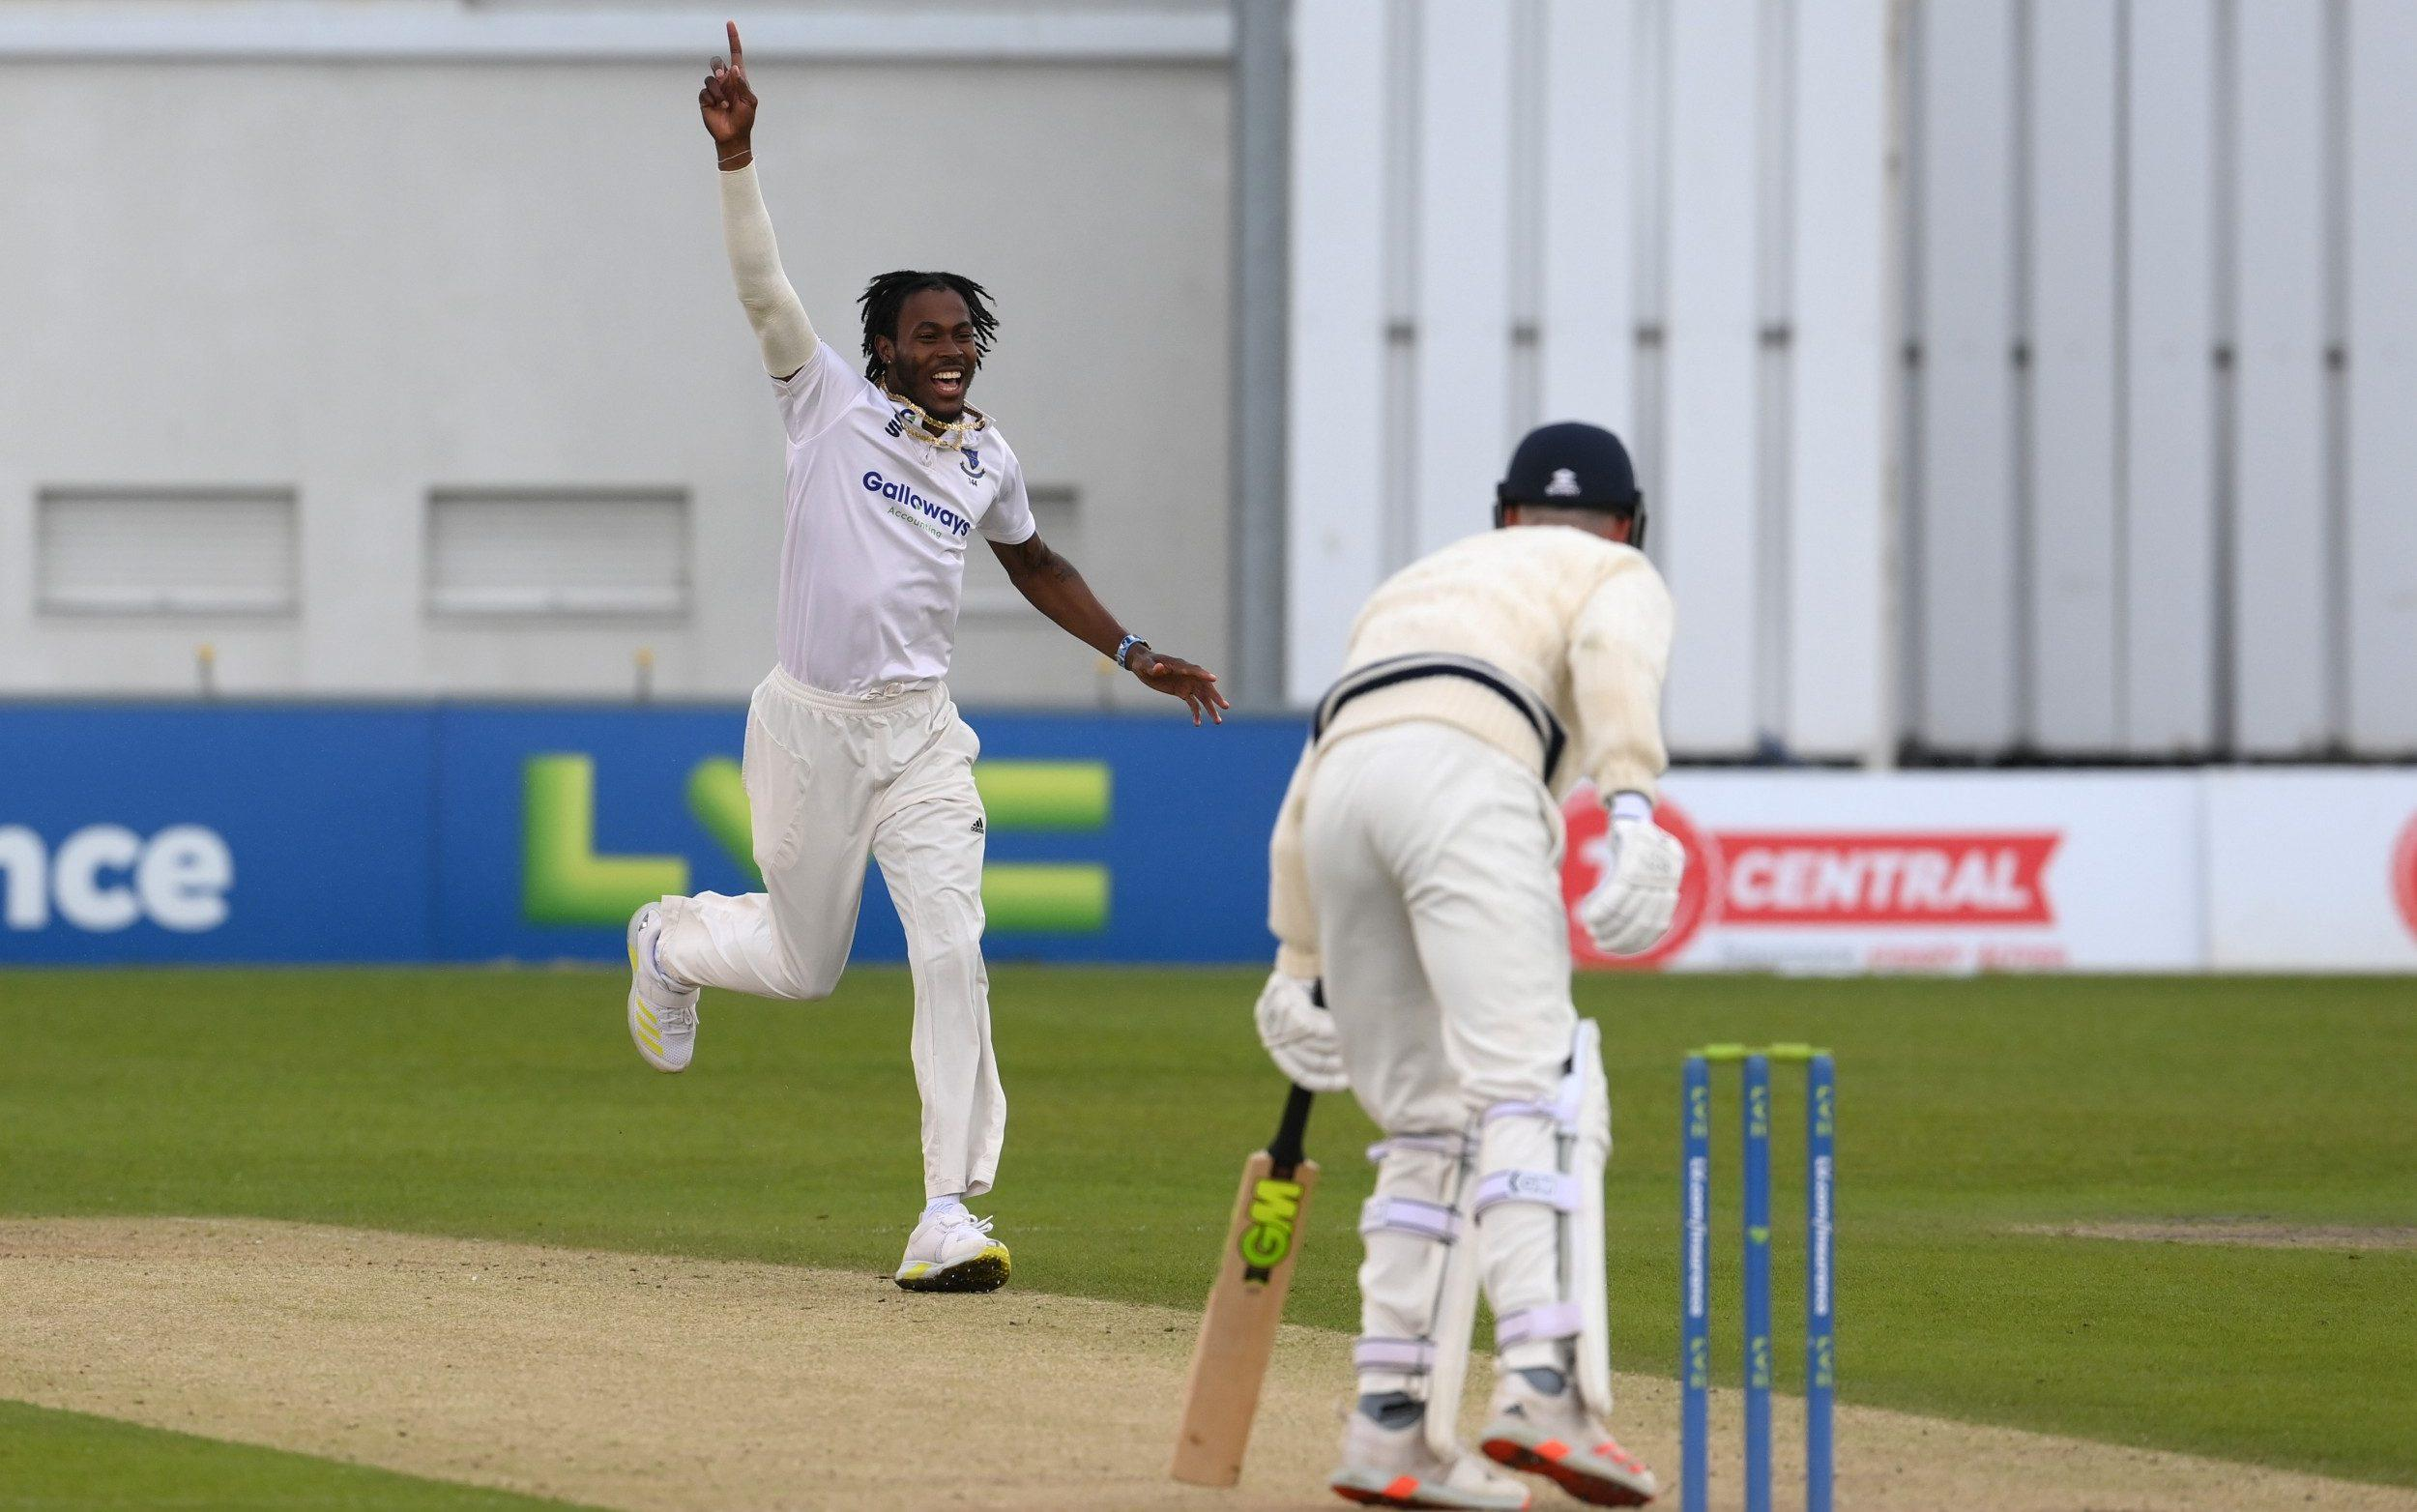 Jofra Archer finds form by dismissing Zak Crawley as Sussex take control against Kent